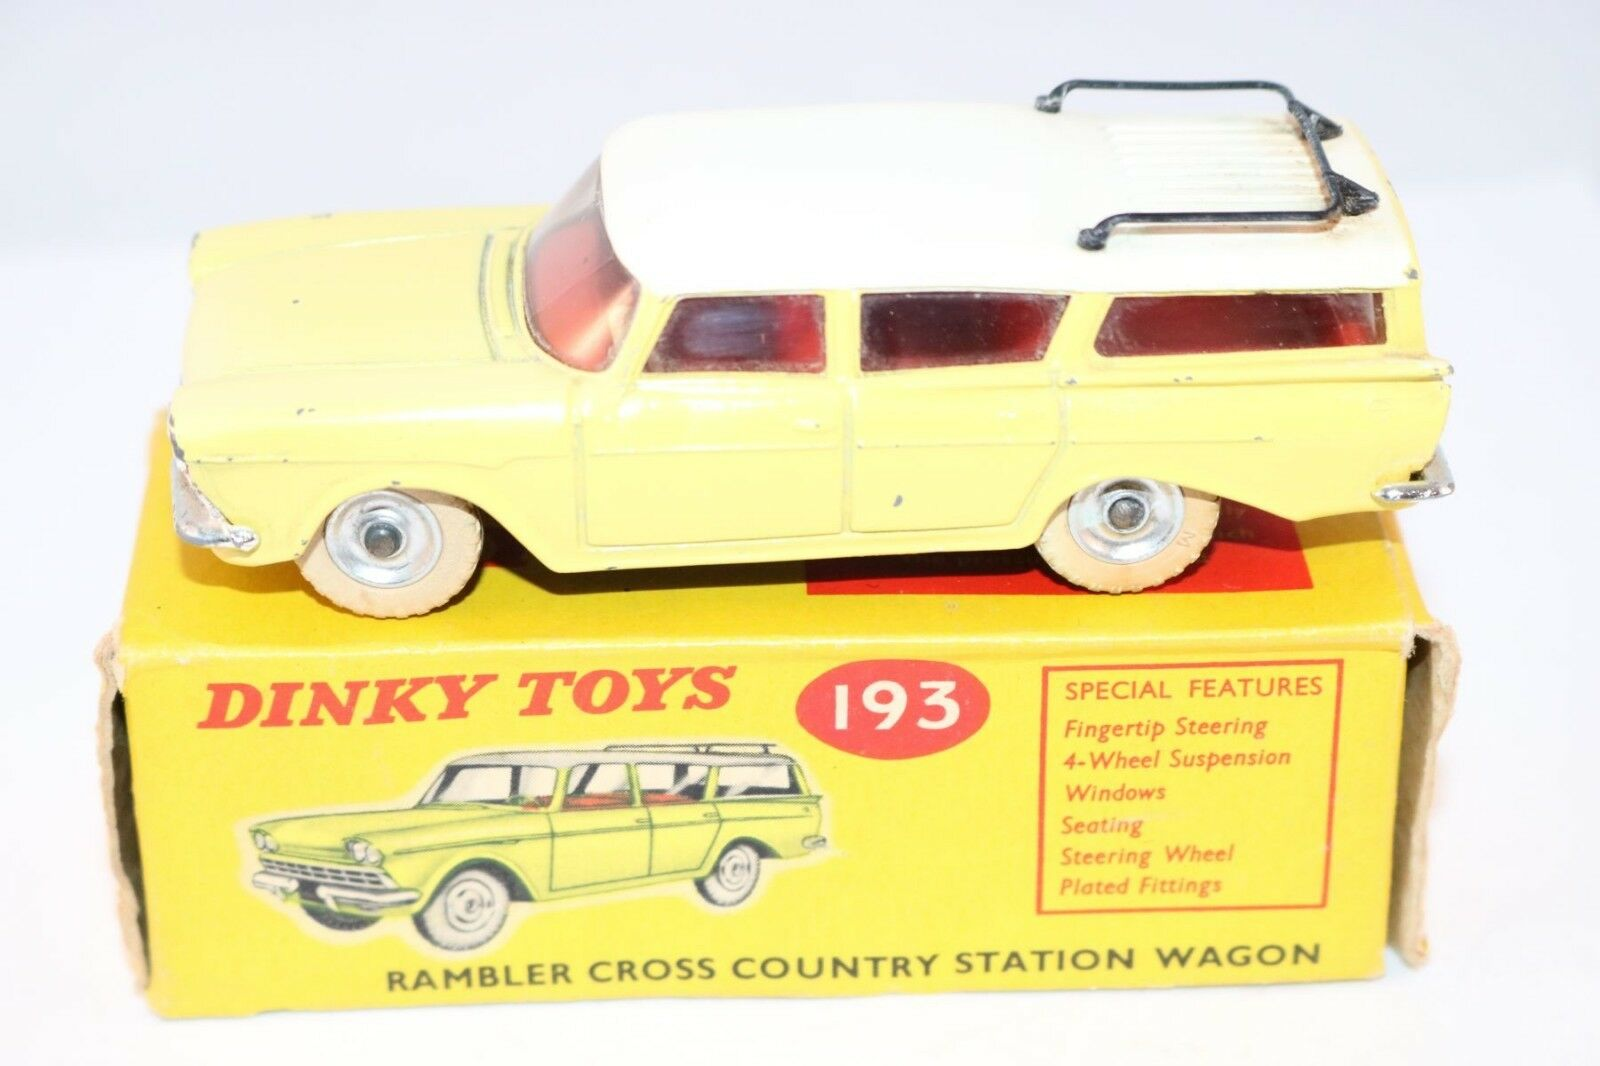 Dinky Toys 193 Rambler Station wagon in excellent plus all original condition